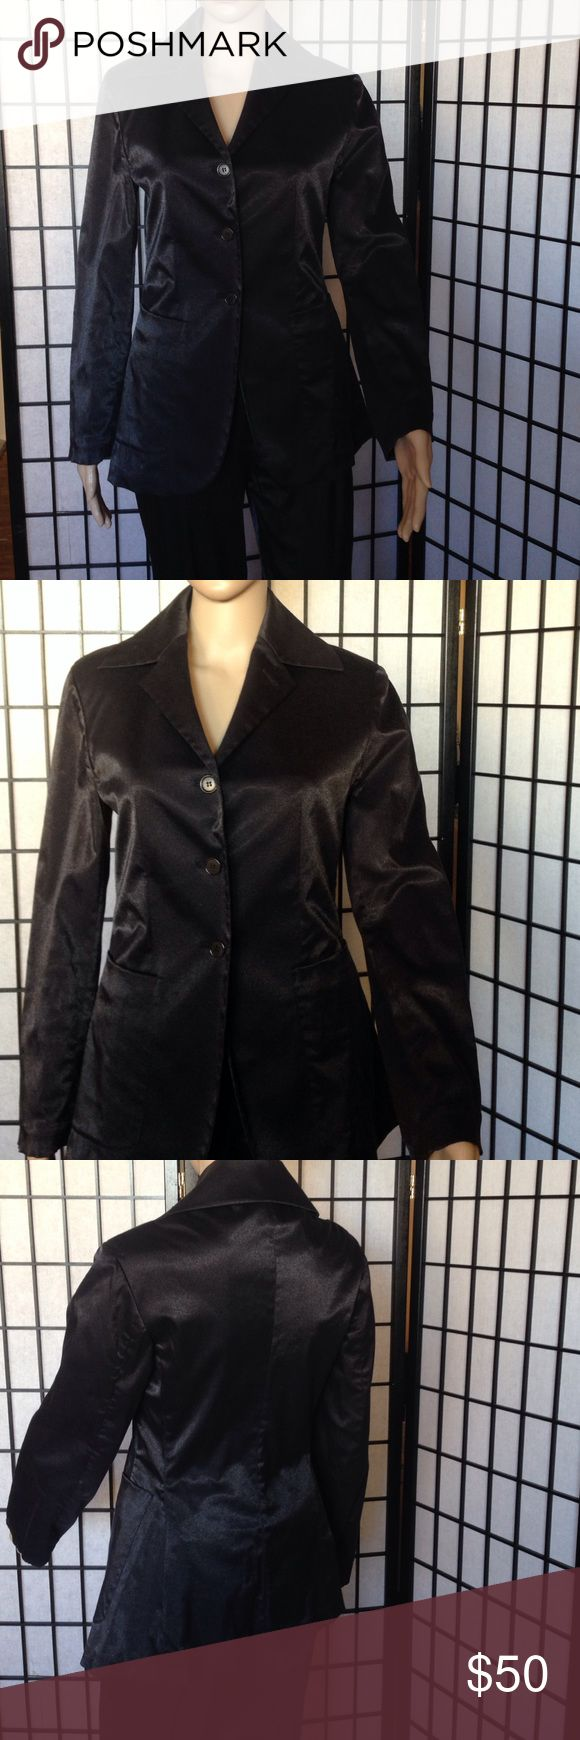 Black Women's Jacket Cotton and Polyamide jacket. Made in Italy. gigli Jackets & Coats Blazers